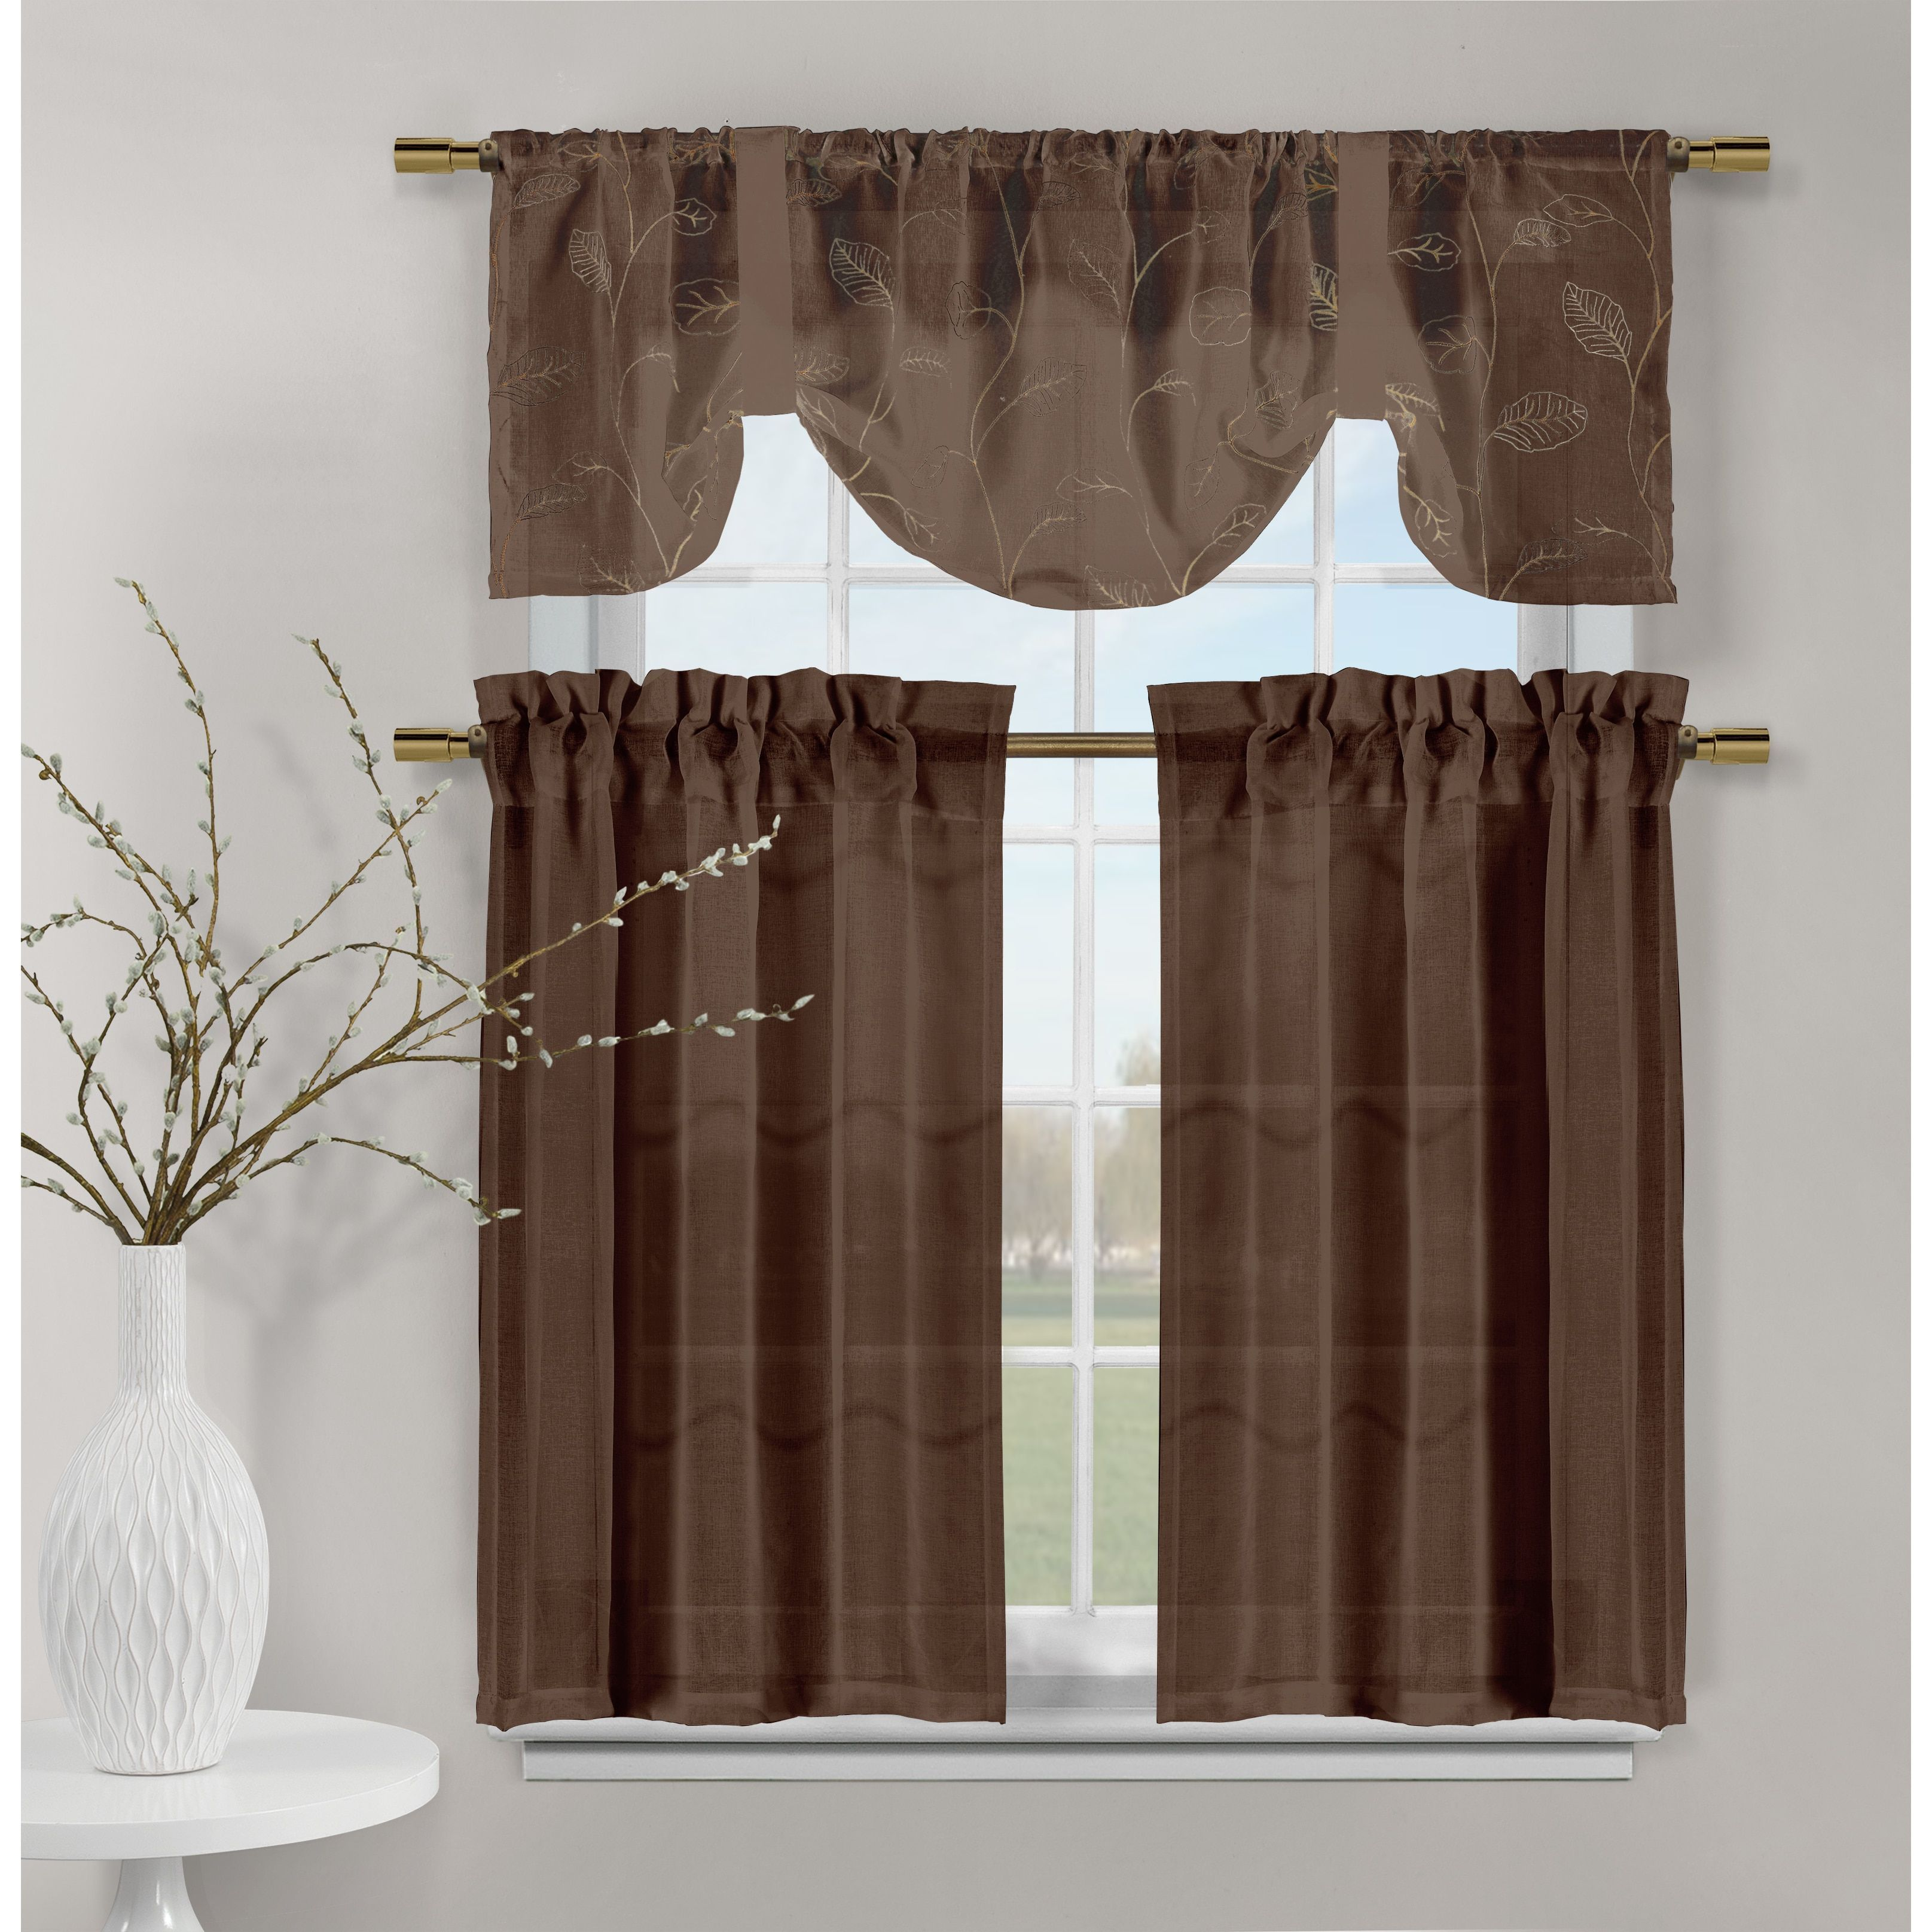 Duck river videira leaf embossed kitchen curtain red